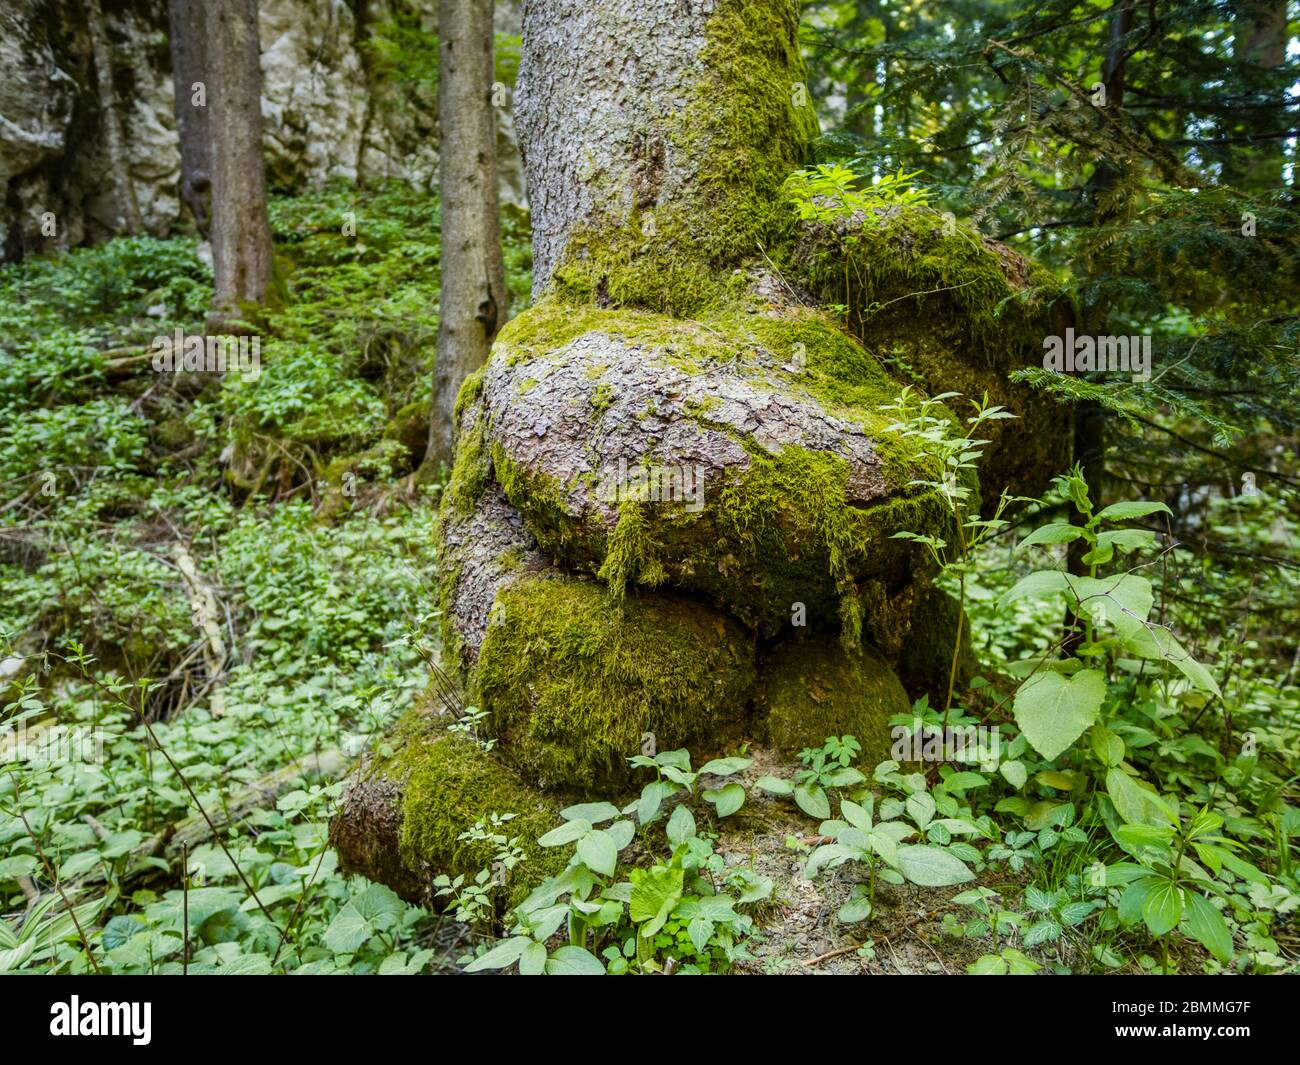 Unusual tree roor trunk in preserved forest resort Golubinjak near Lokve Croatia Europe Stock Photo